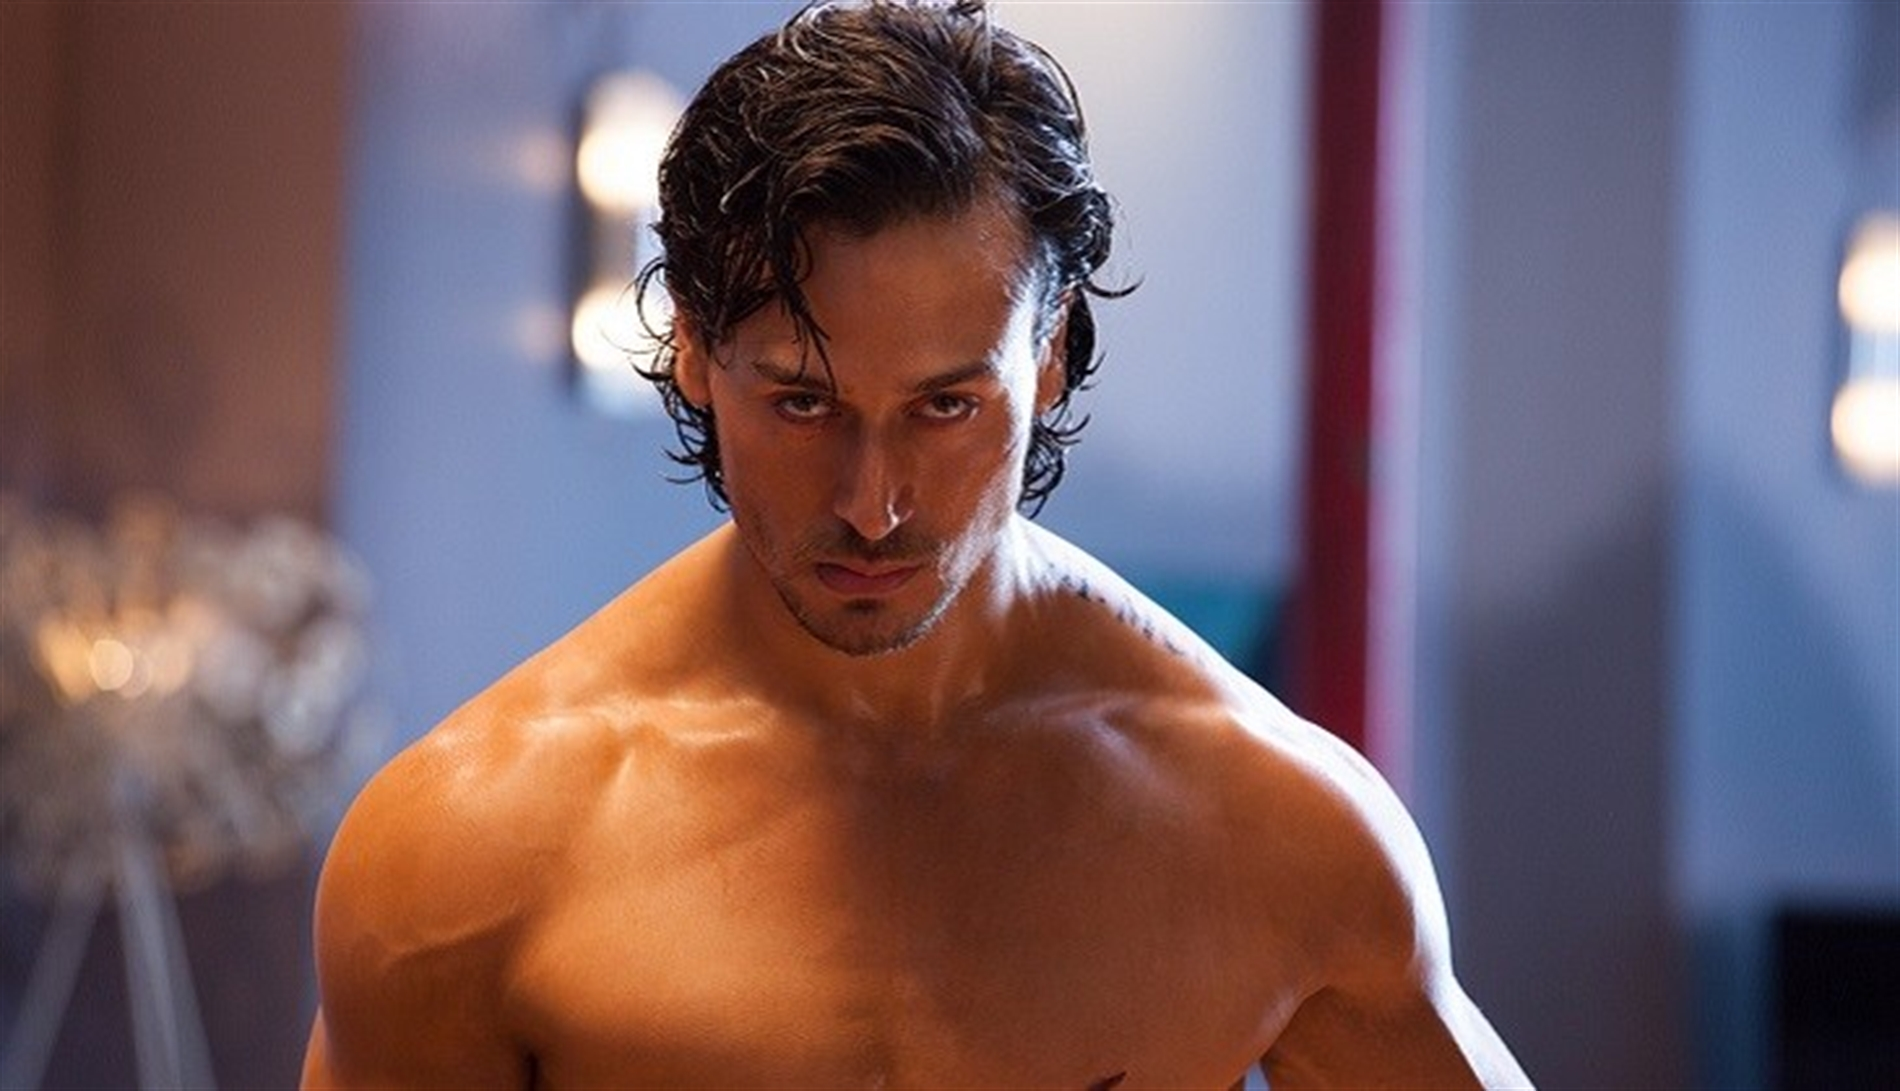 Tiger Shroff is all set for shooting of Heropanti 2 after release of BAAGHI 3